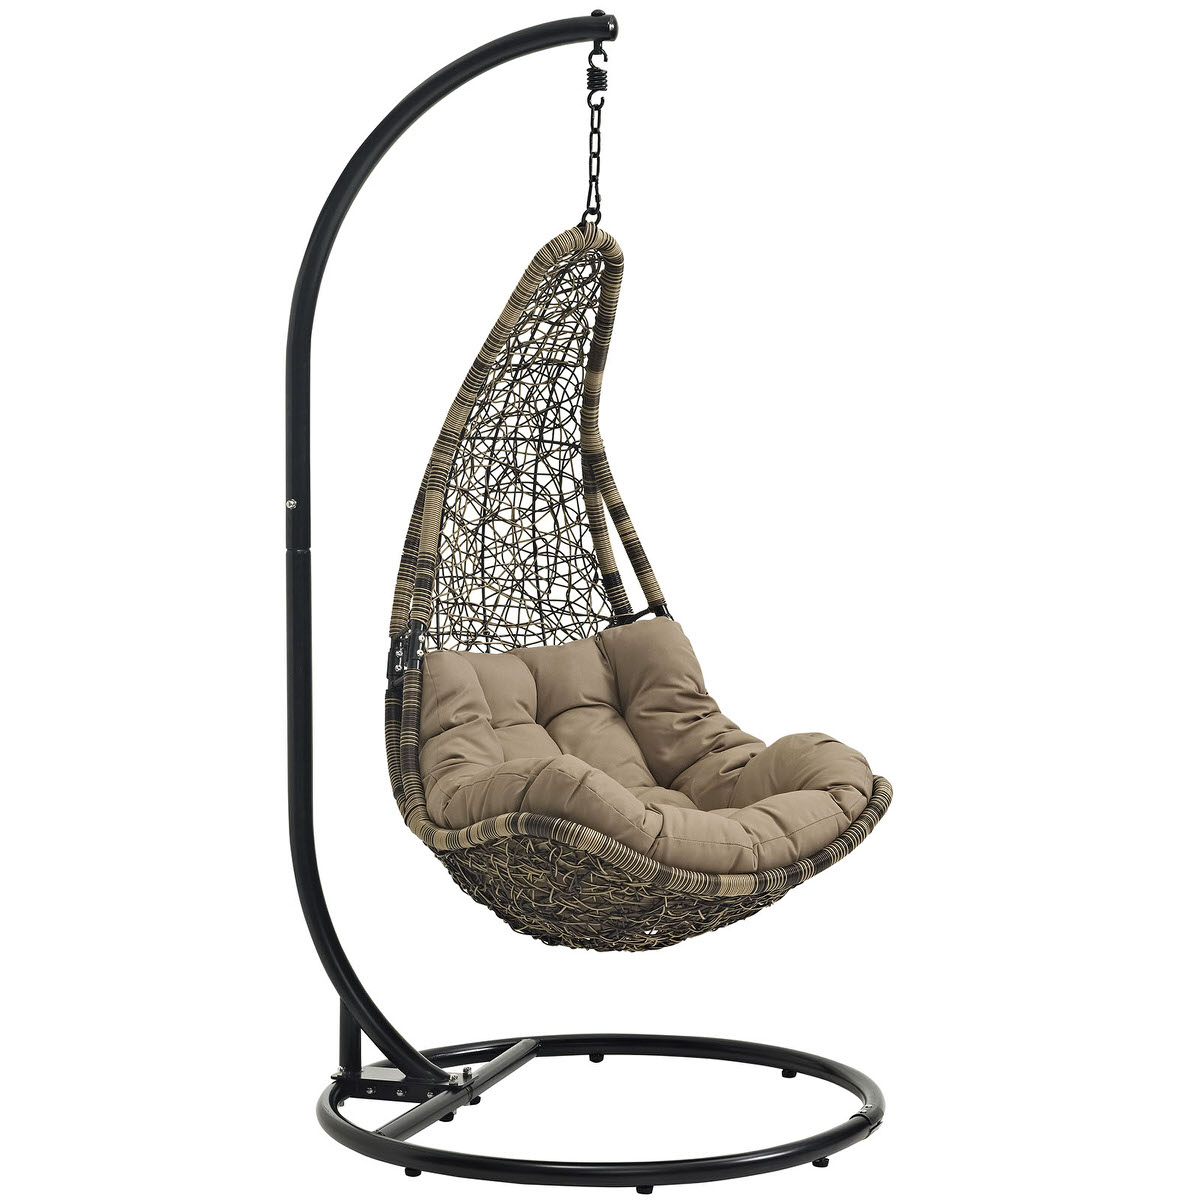 Abate Outdoor Patio Swing Chair With Stand Black Mocha By Modern Living